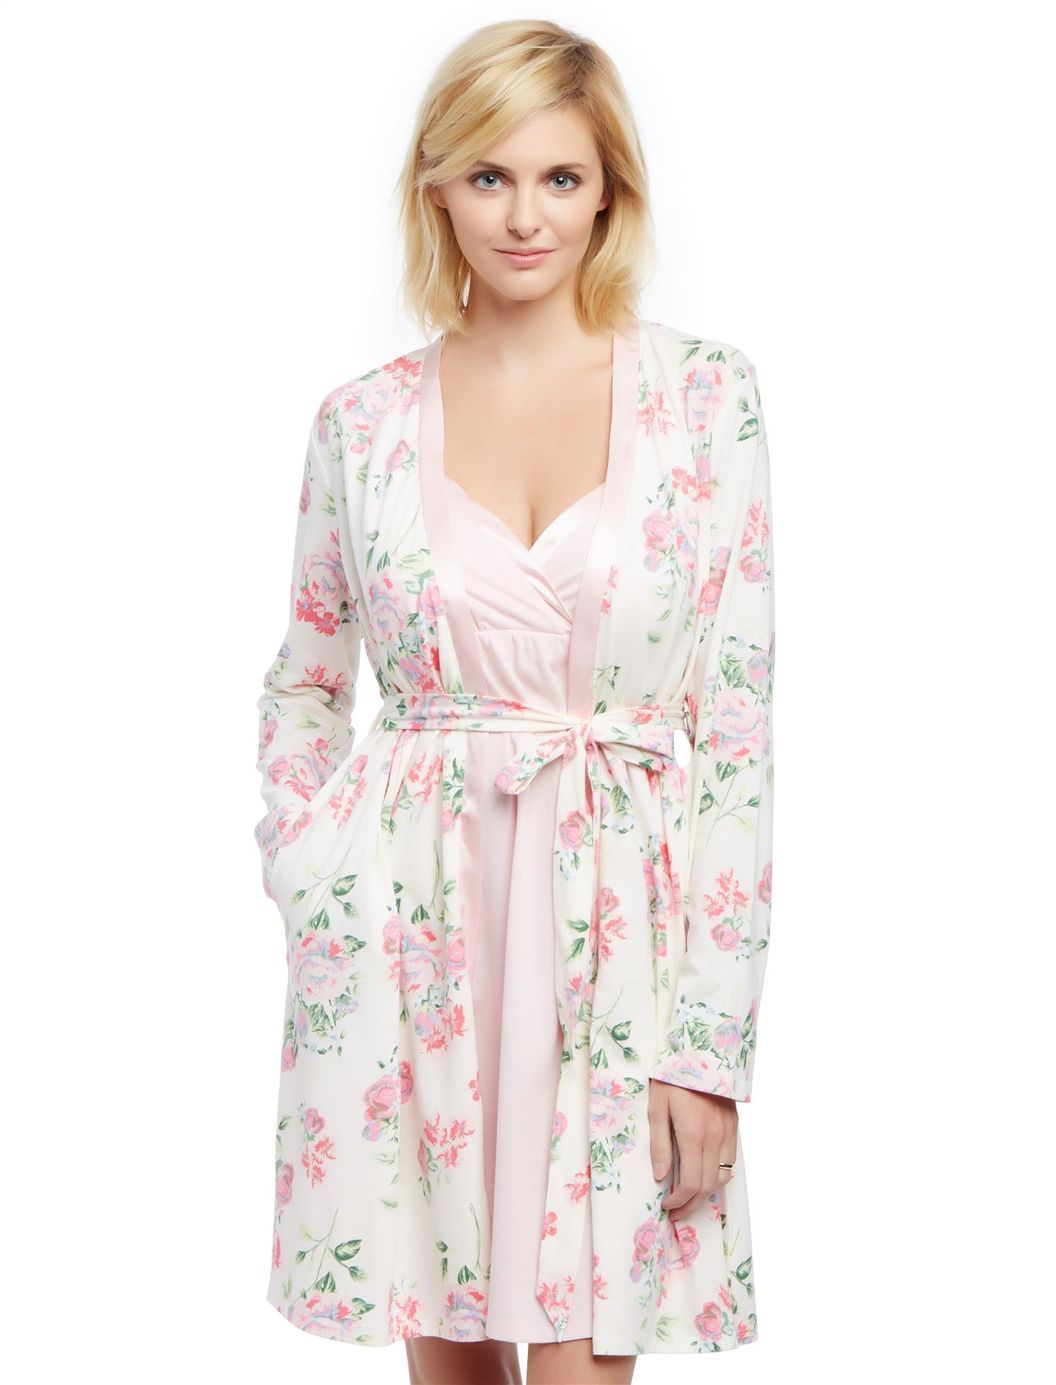 97a596592f Satin Trim Maternity Nightgown And Robe Set